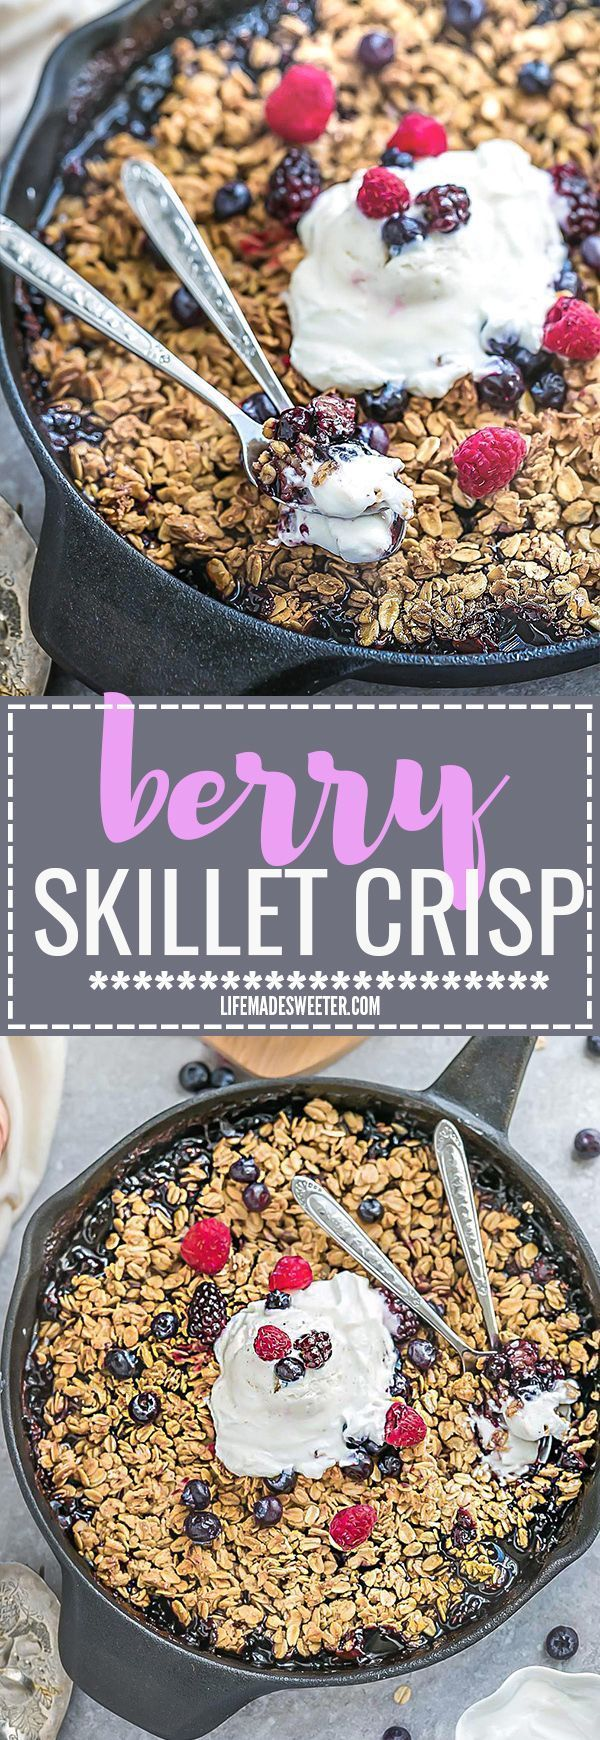 This recipe for Mixed Berry Skillet Crisp is made with a gluten free oat crumble topping and is the perfect easy dessert for using up summer (or frozen) berries. Best of all, it's also vegan, refined sugar free and takes less than 10 minutes to assemble with blueberries, raspberries, strawberries and blackberries. Plus recipe video.